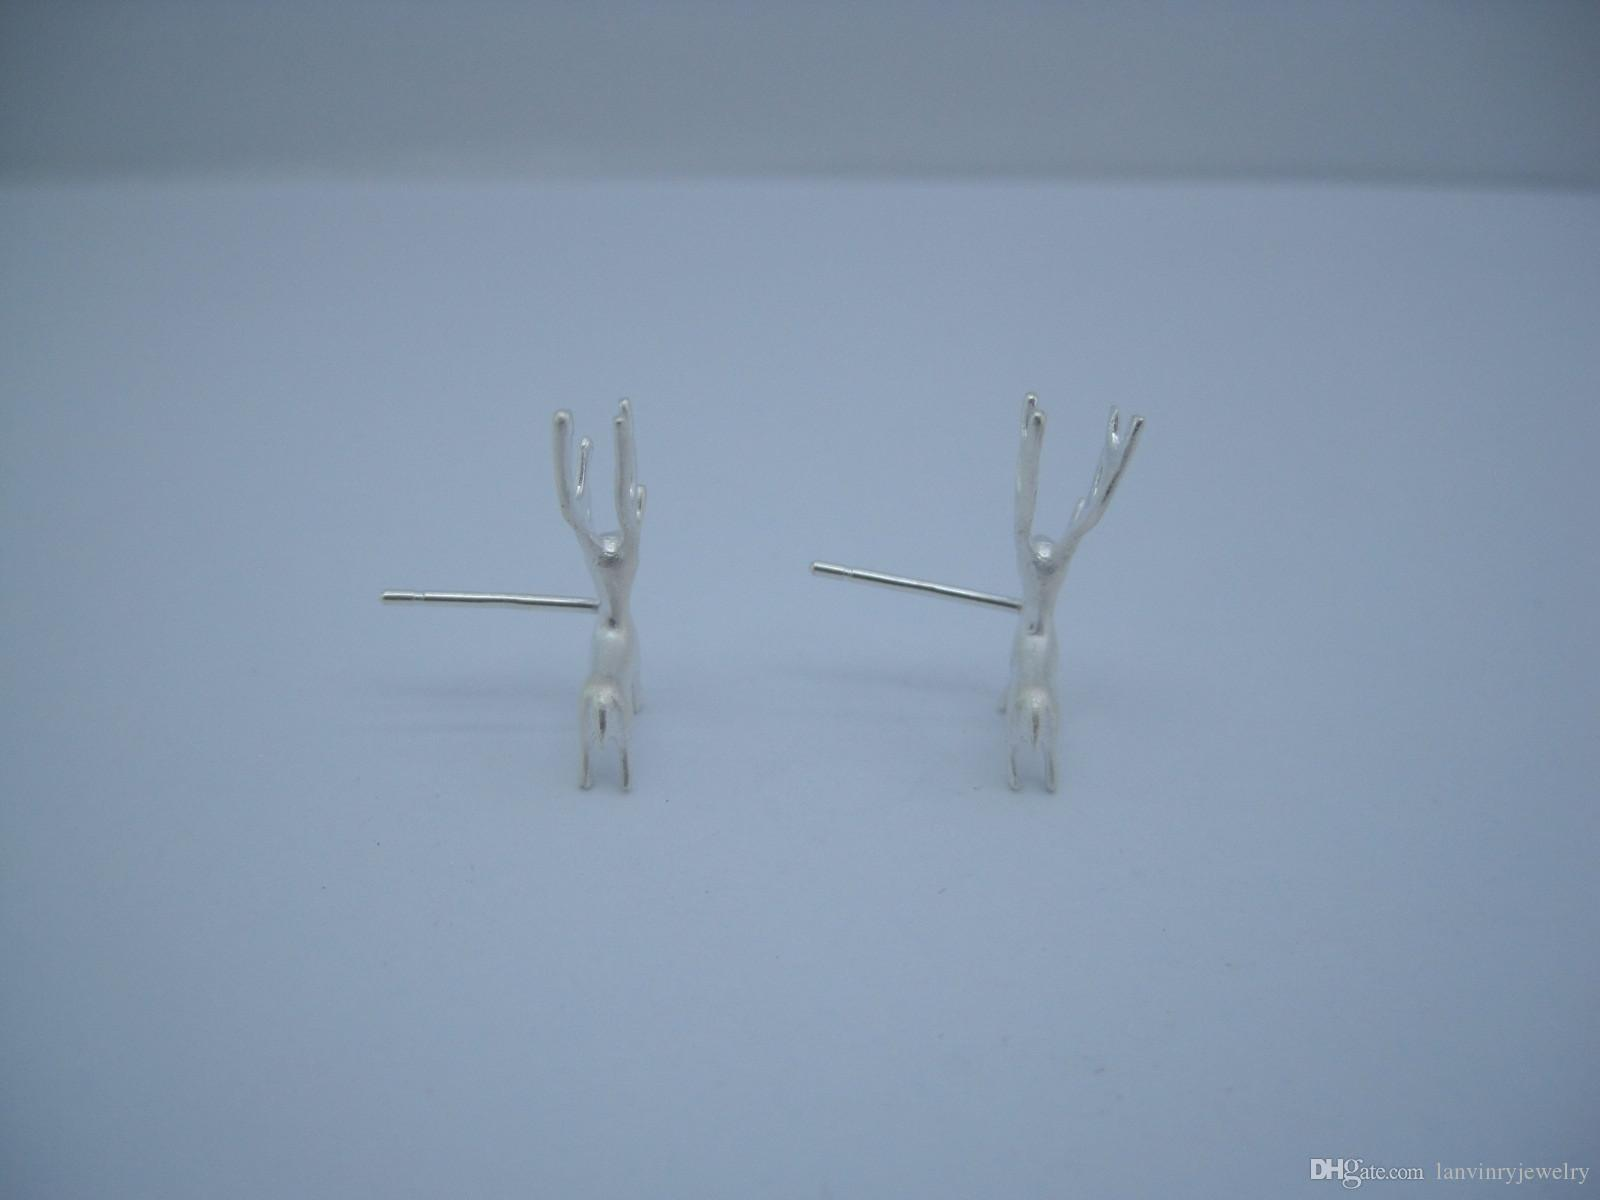 Luxury Brand new 925 sterling silver fashion jewelry hand-made designer cute silver deer post stud earring for Christmas gift